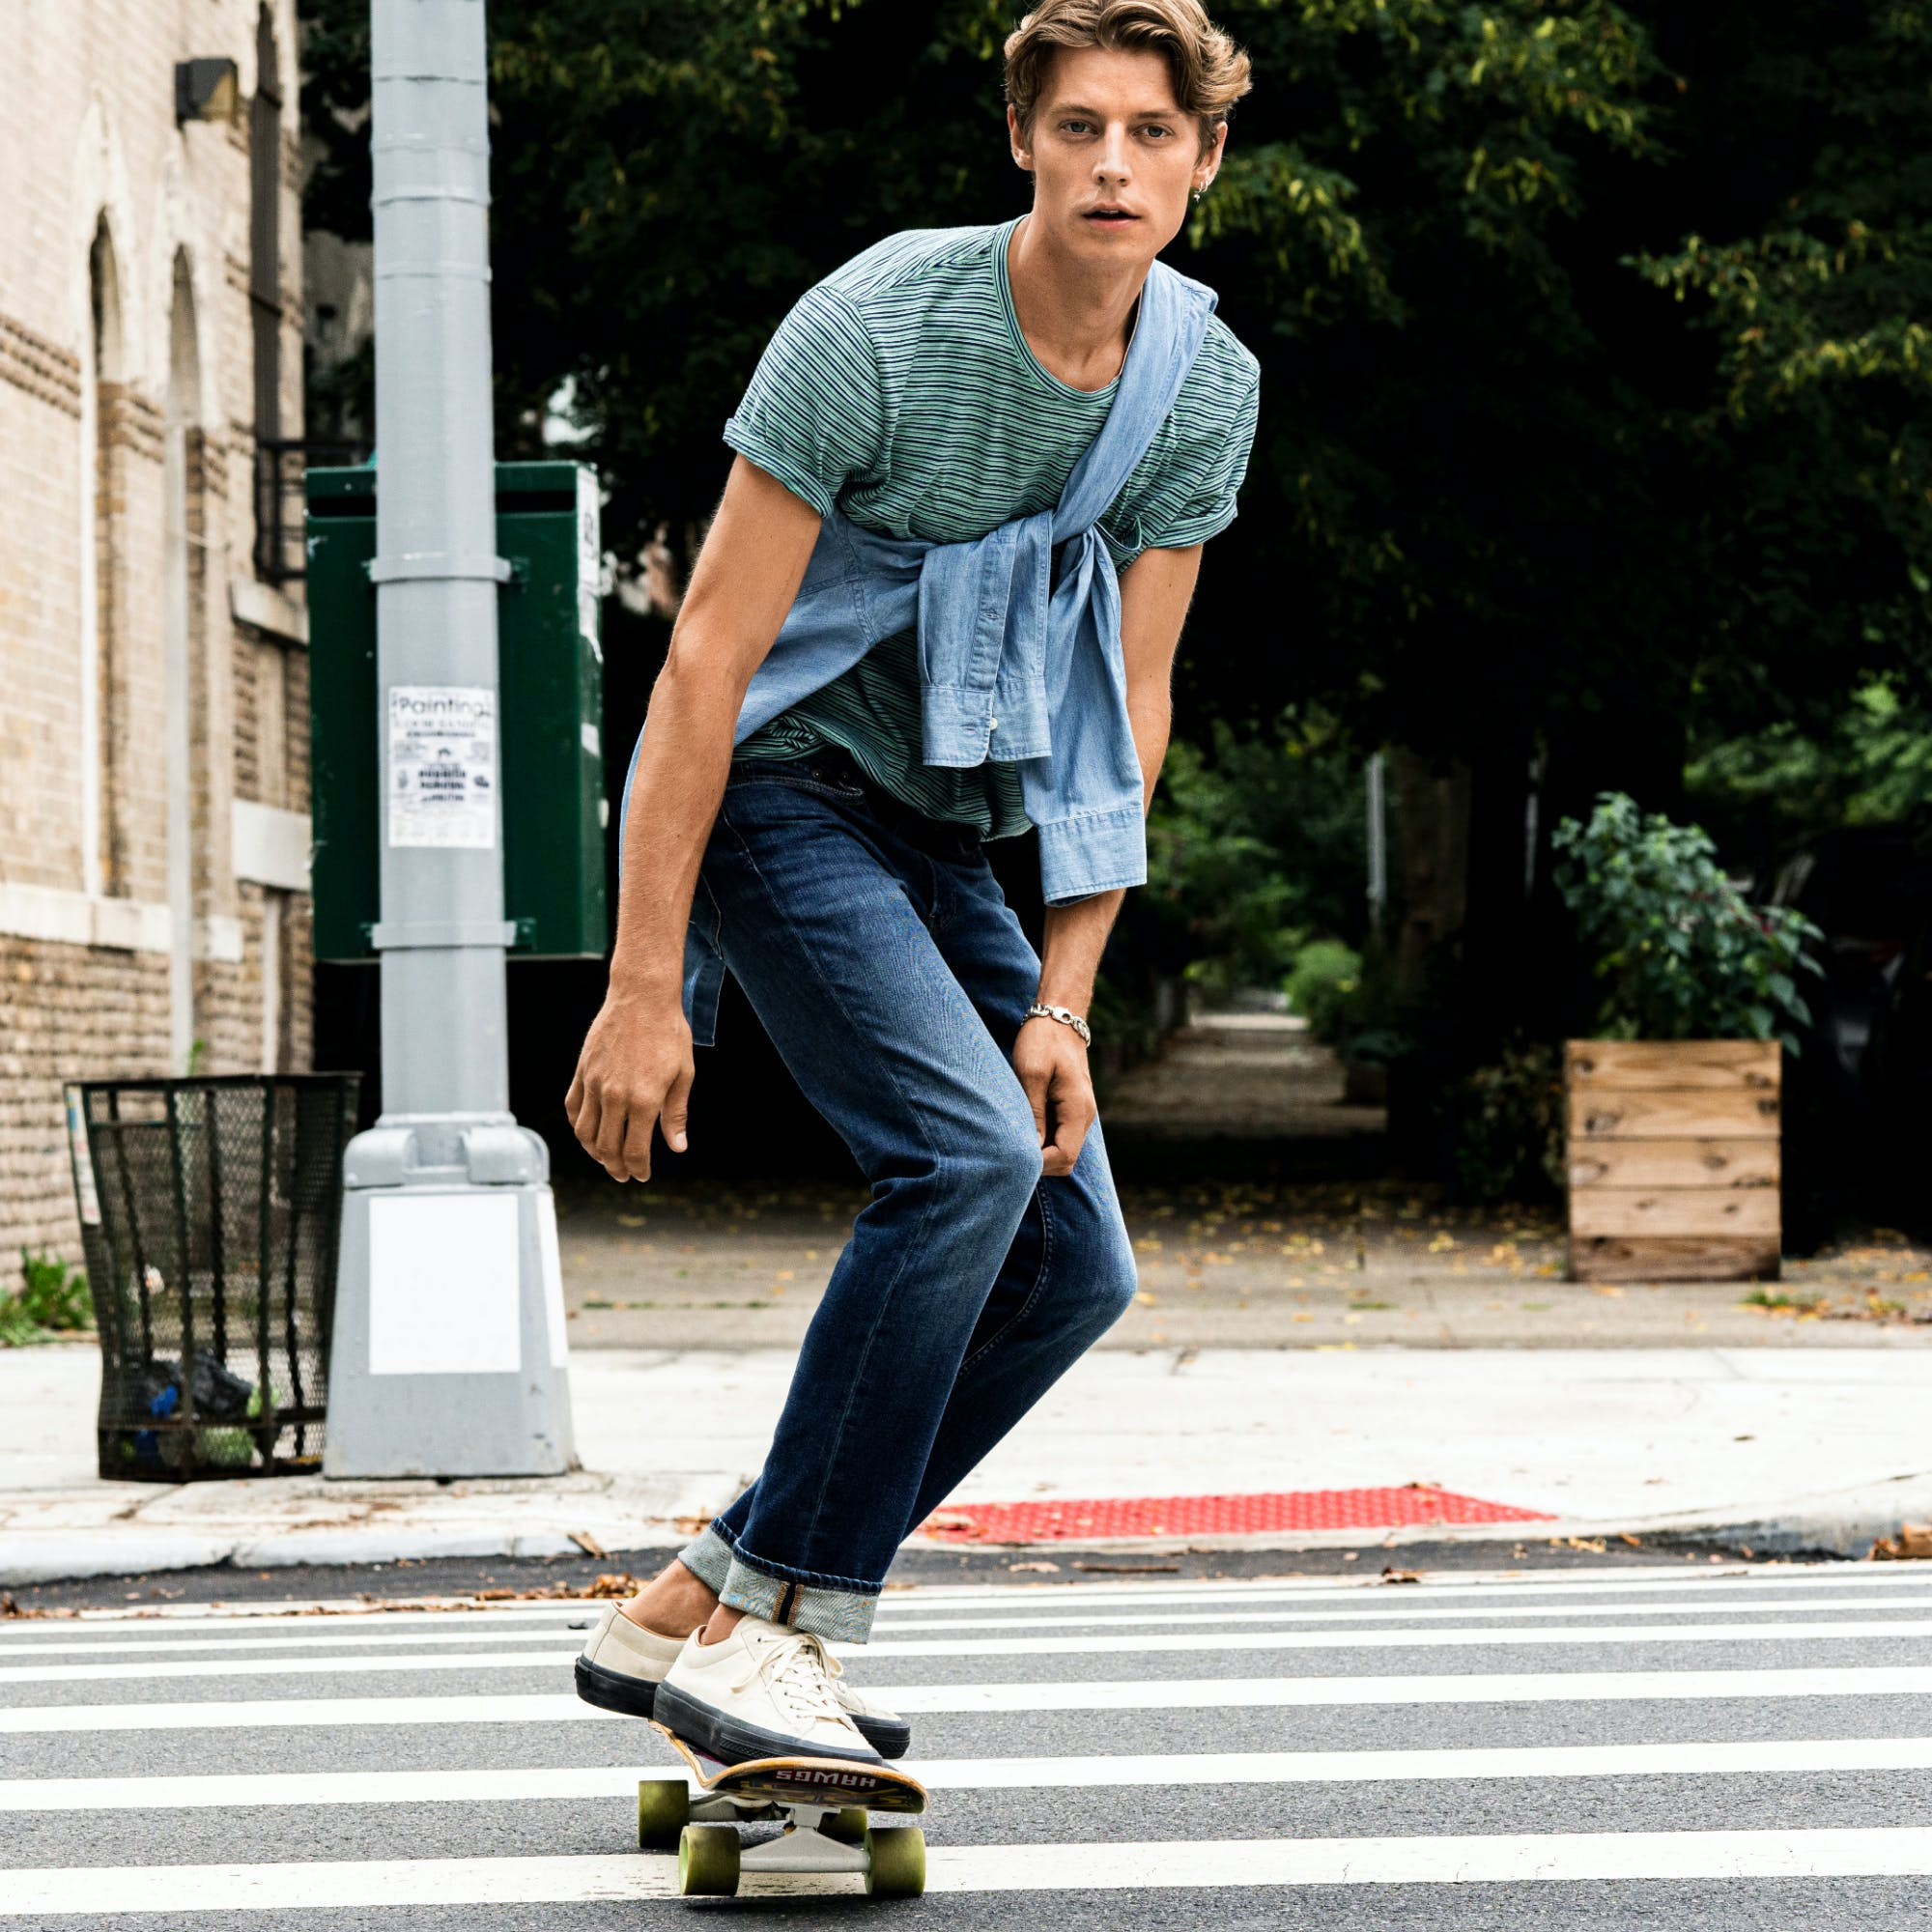 Man wearing lightweight Jeans skateboarding